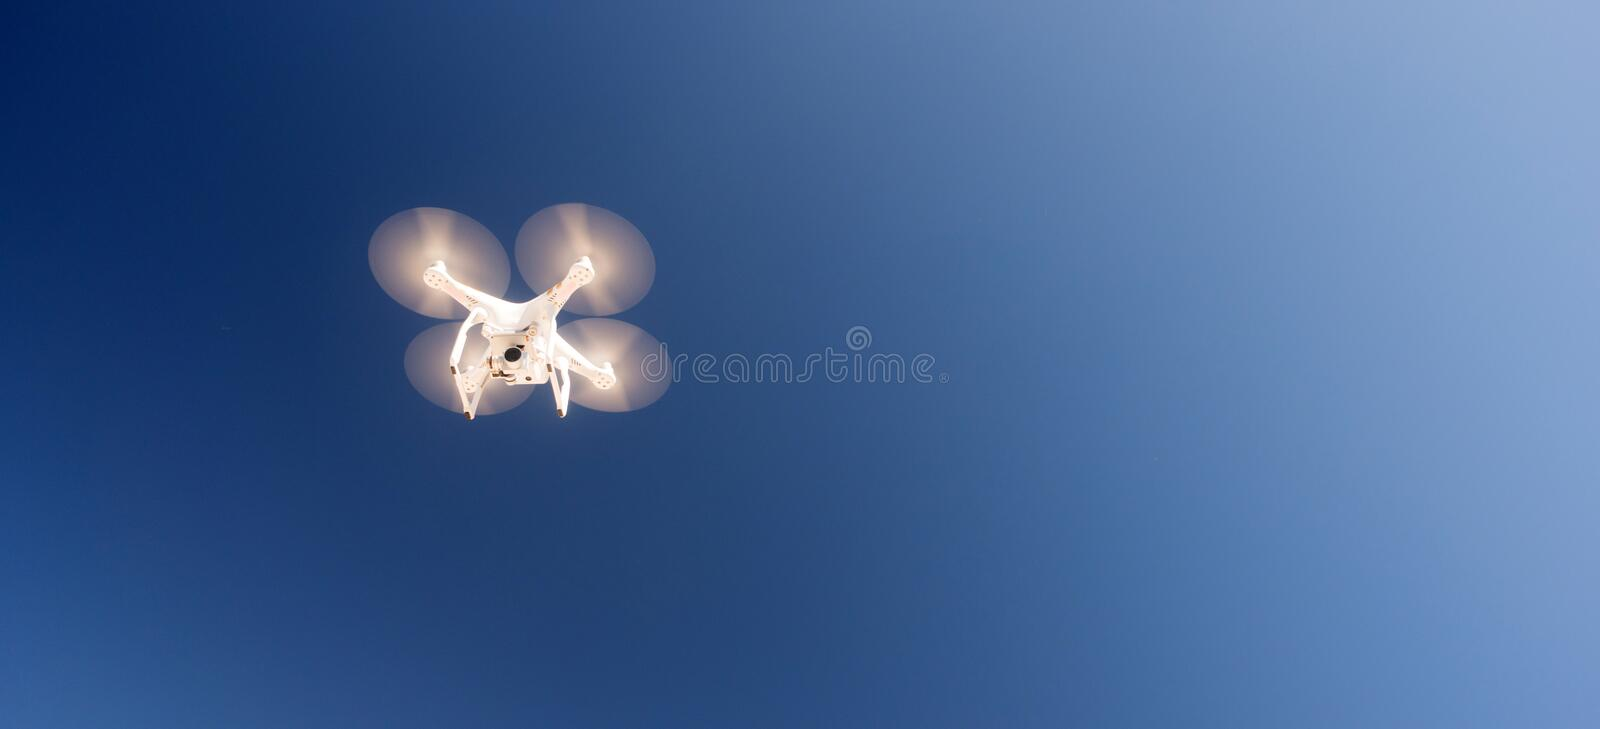 White Quadcopter Drone Flying Hoovering Blue Sky royalty free stock images